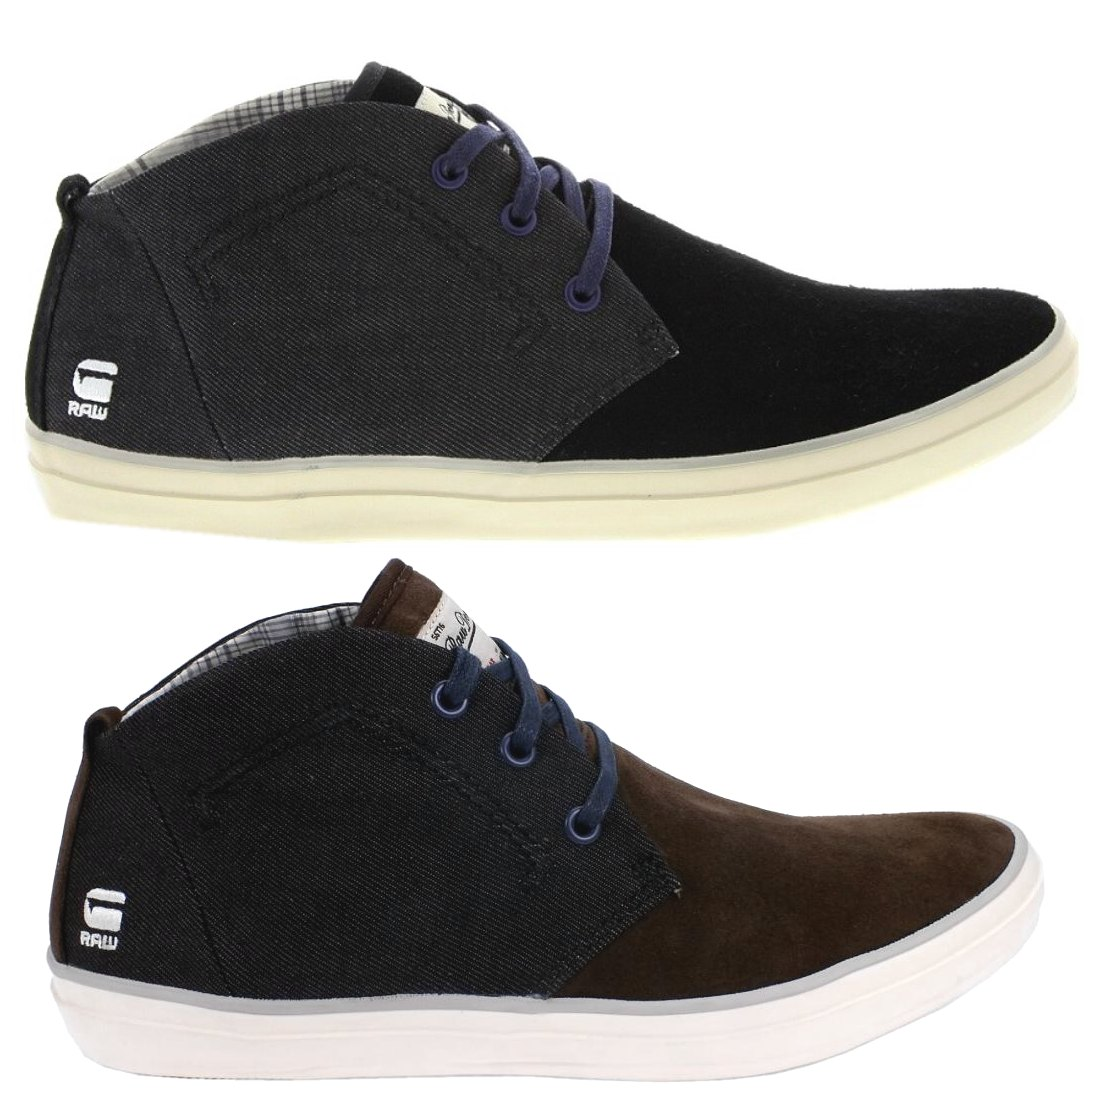 g star raw stun scupper winter mix mid cut sneaker schuhe herren ebay. Black Bedroom Furniture Sets. Home Design Ideas